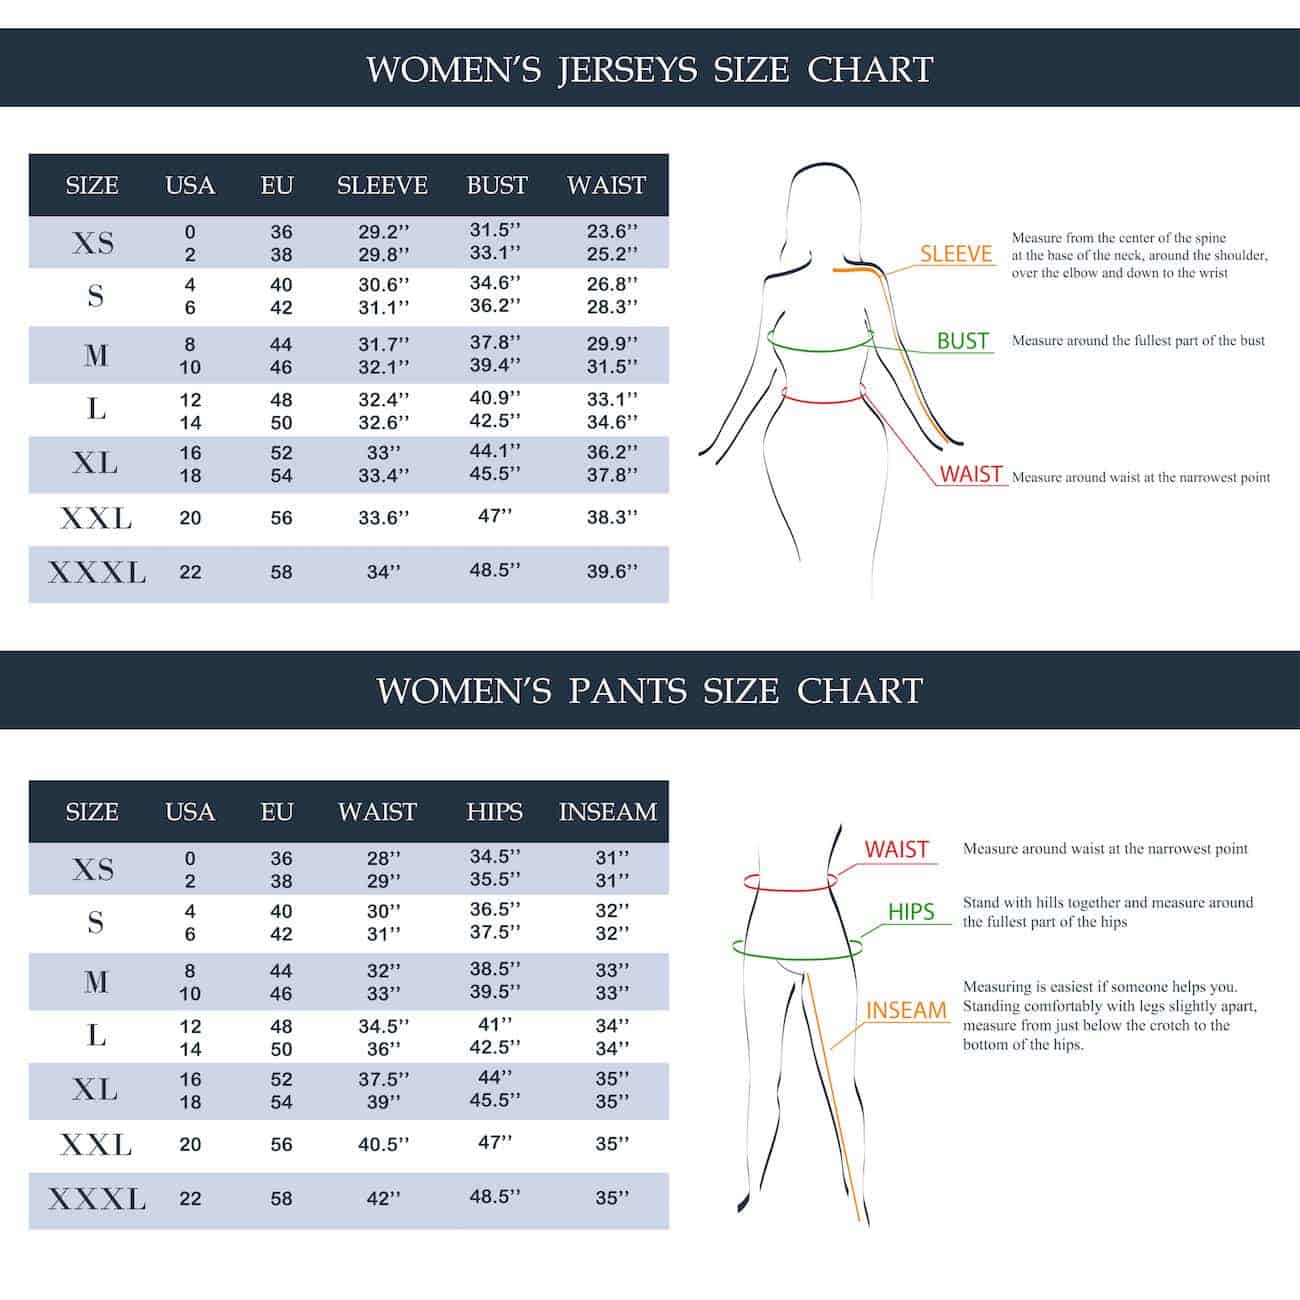 Chart setting out womens' pant sizes